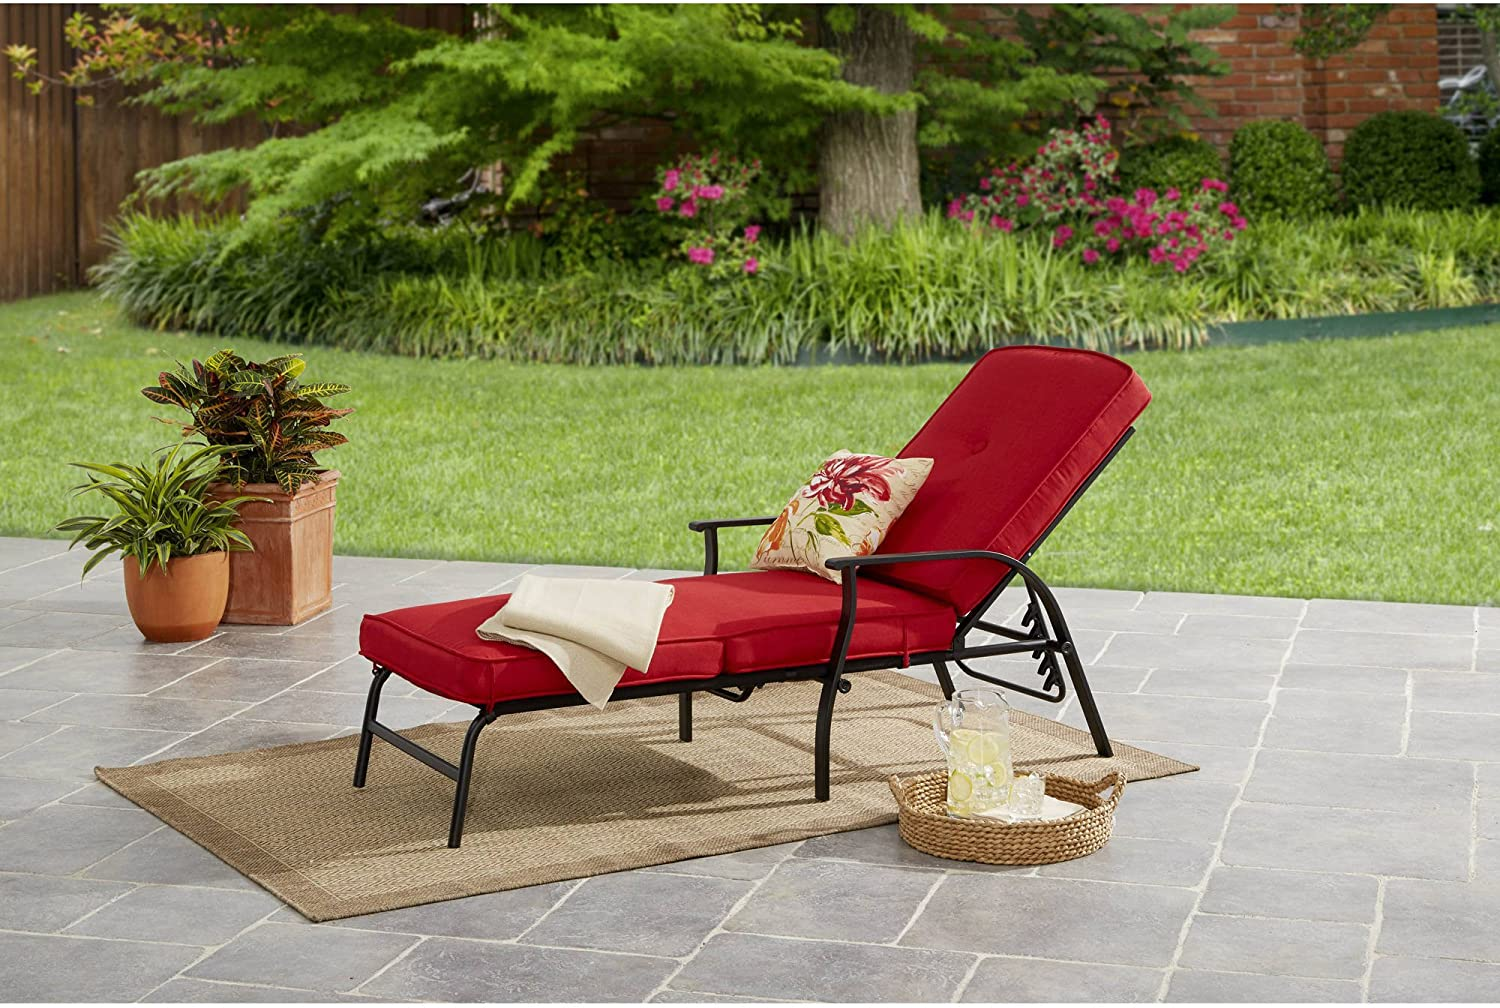 Chaise Lounge Mainstays Belden Park for Cushions Pa Outdoor Quantity New Shipping Free Shipping limited with